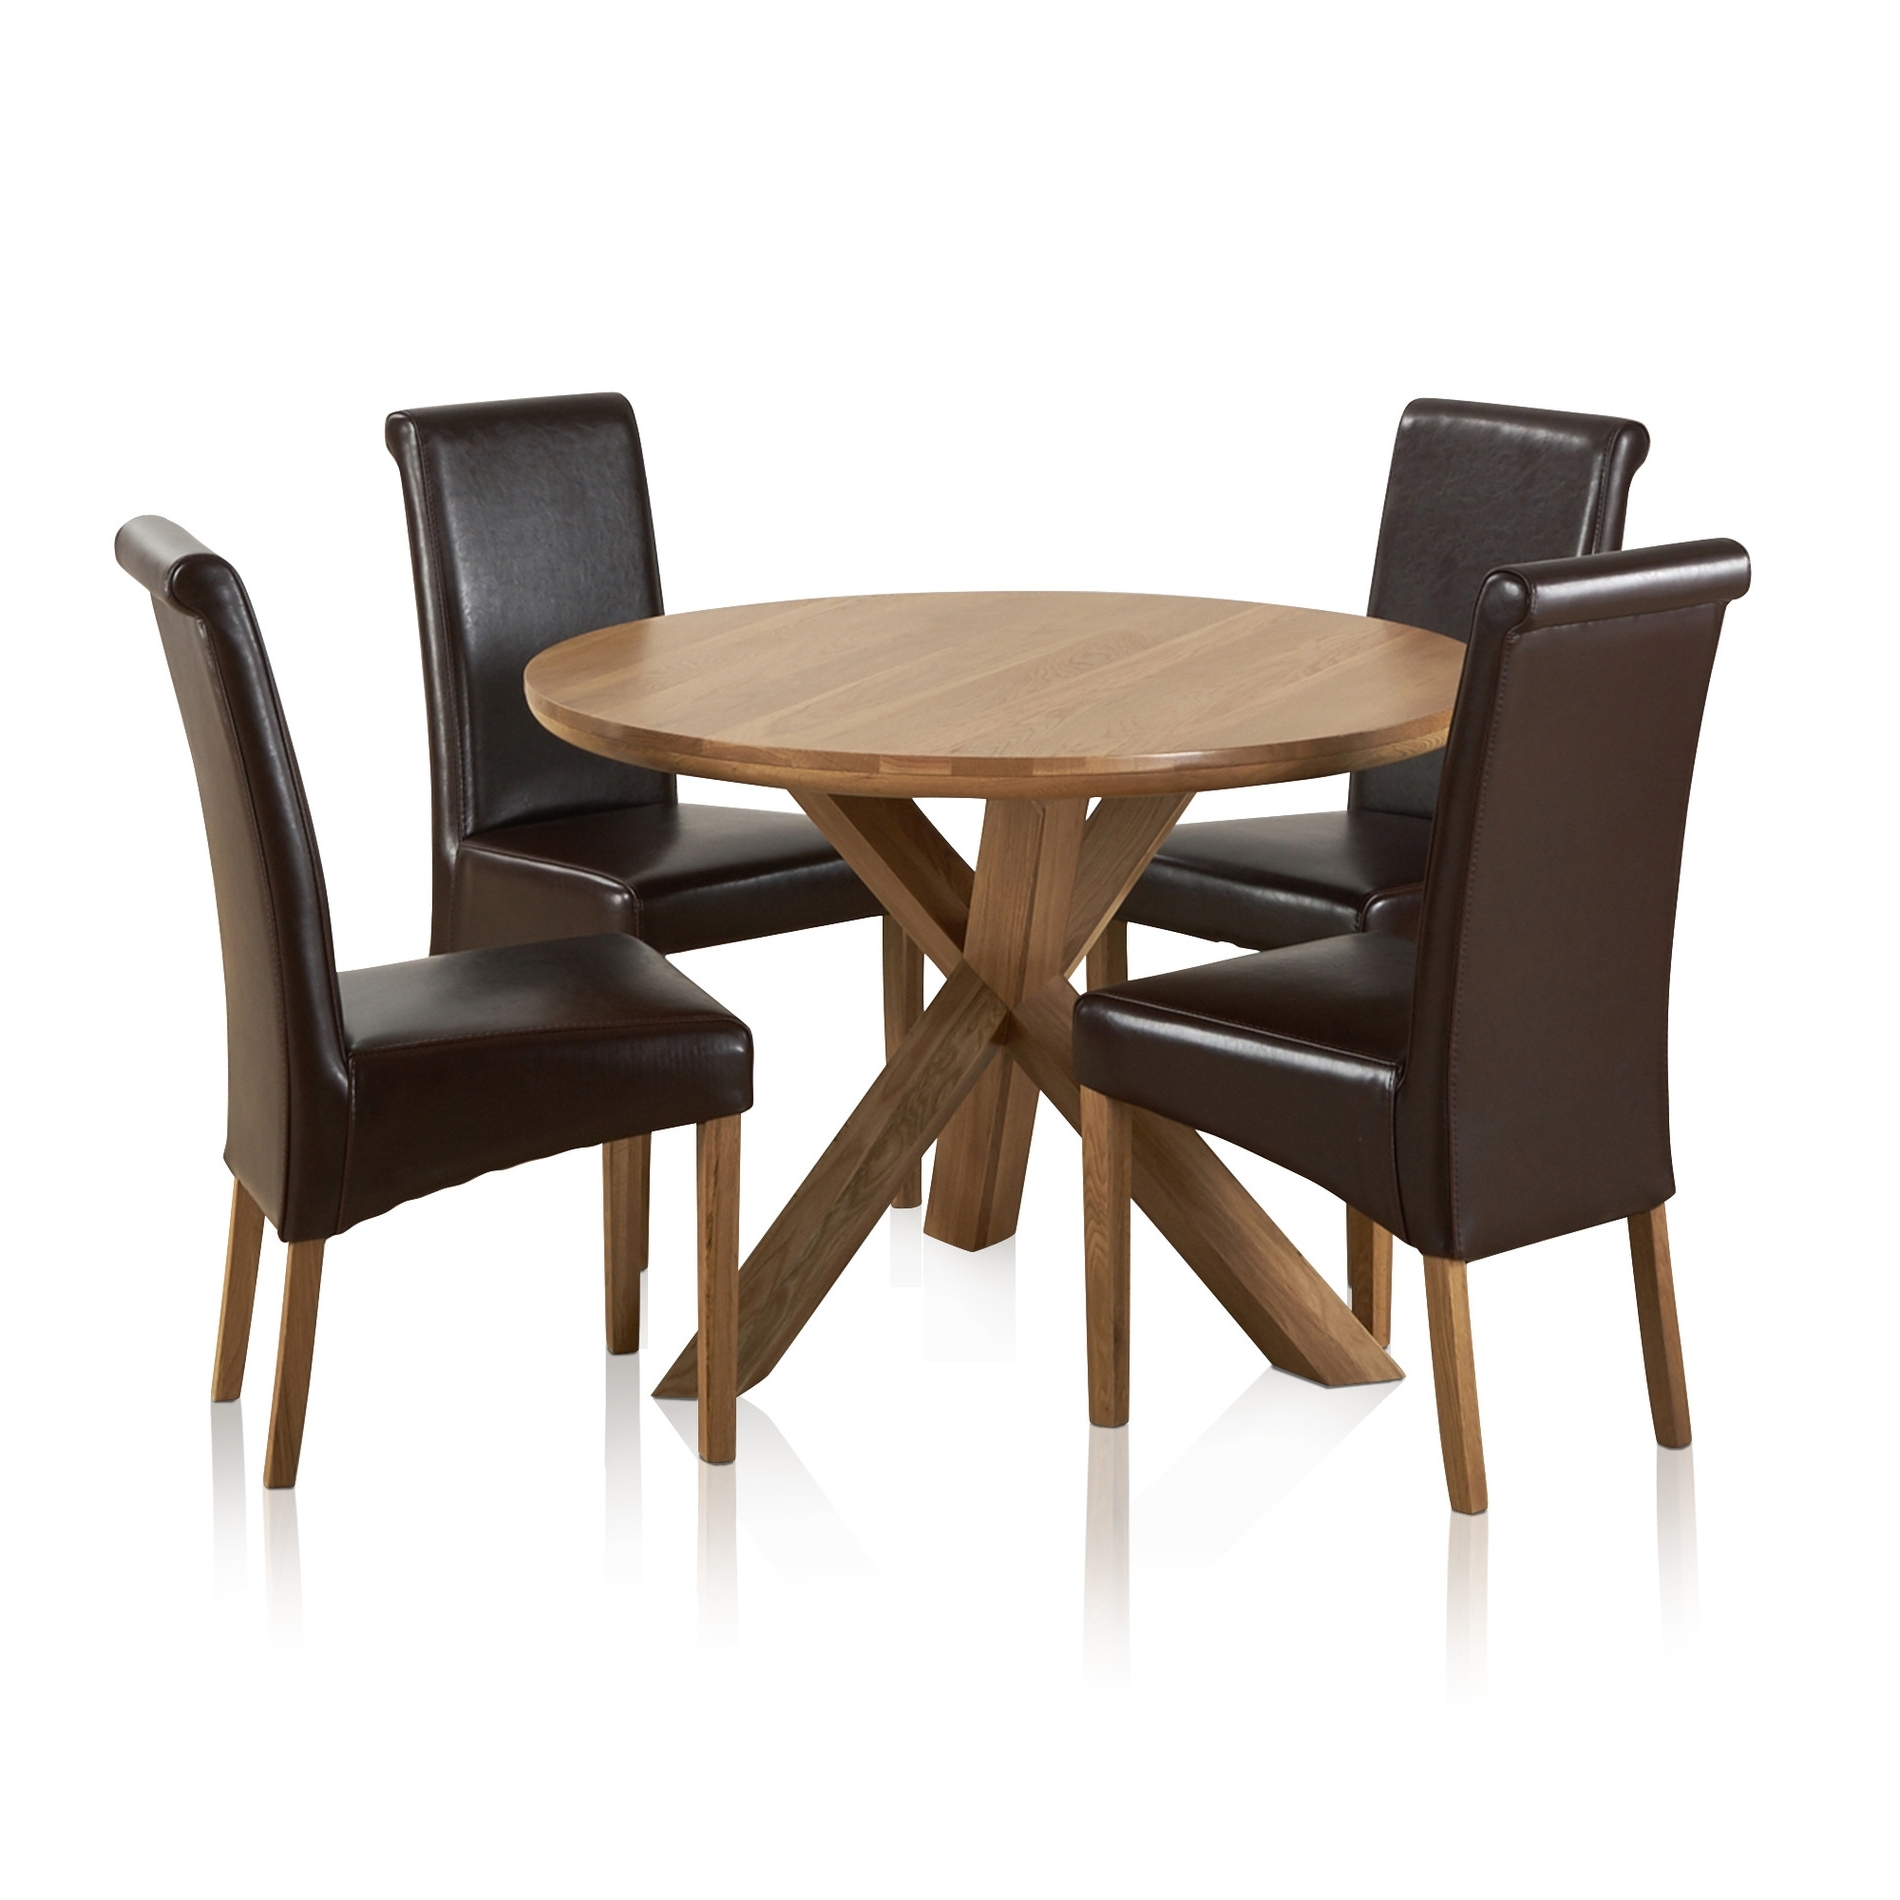 Round Oak Dining Tables And 4 Chairs With Regard To Best And Newest Natural Real Oak Dining Set: Round Table + 4 Brown Leather Chairs (View 20 of 25)